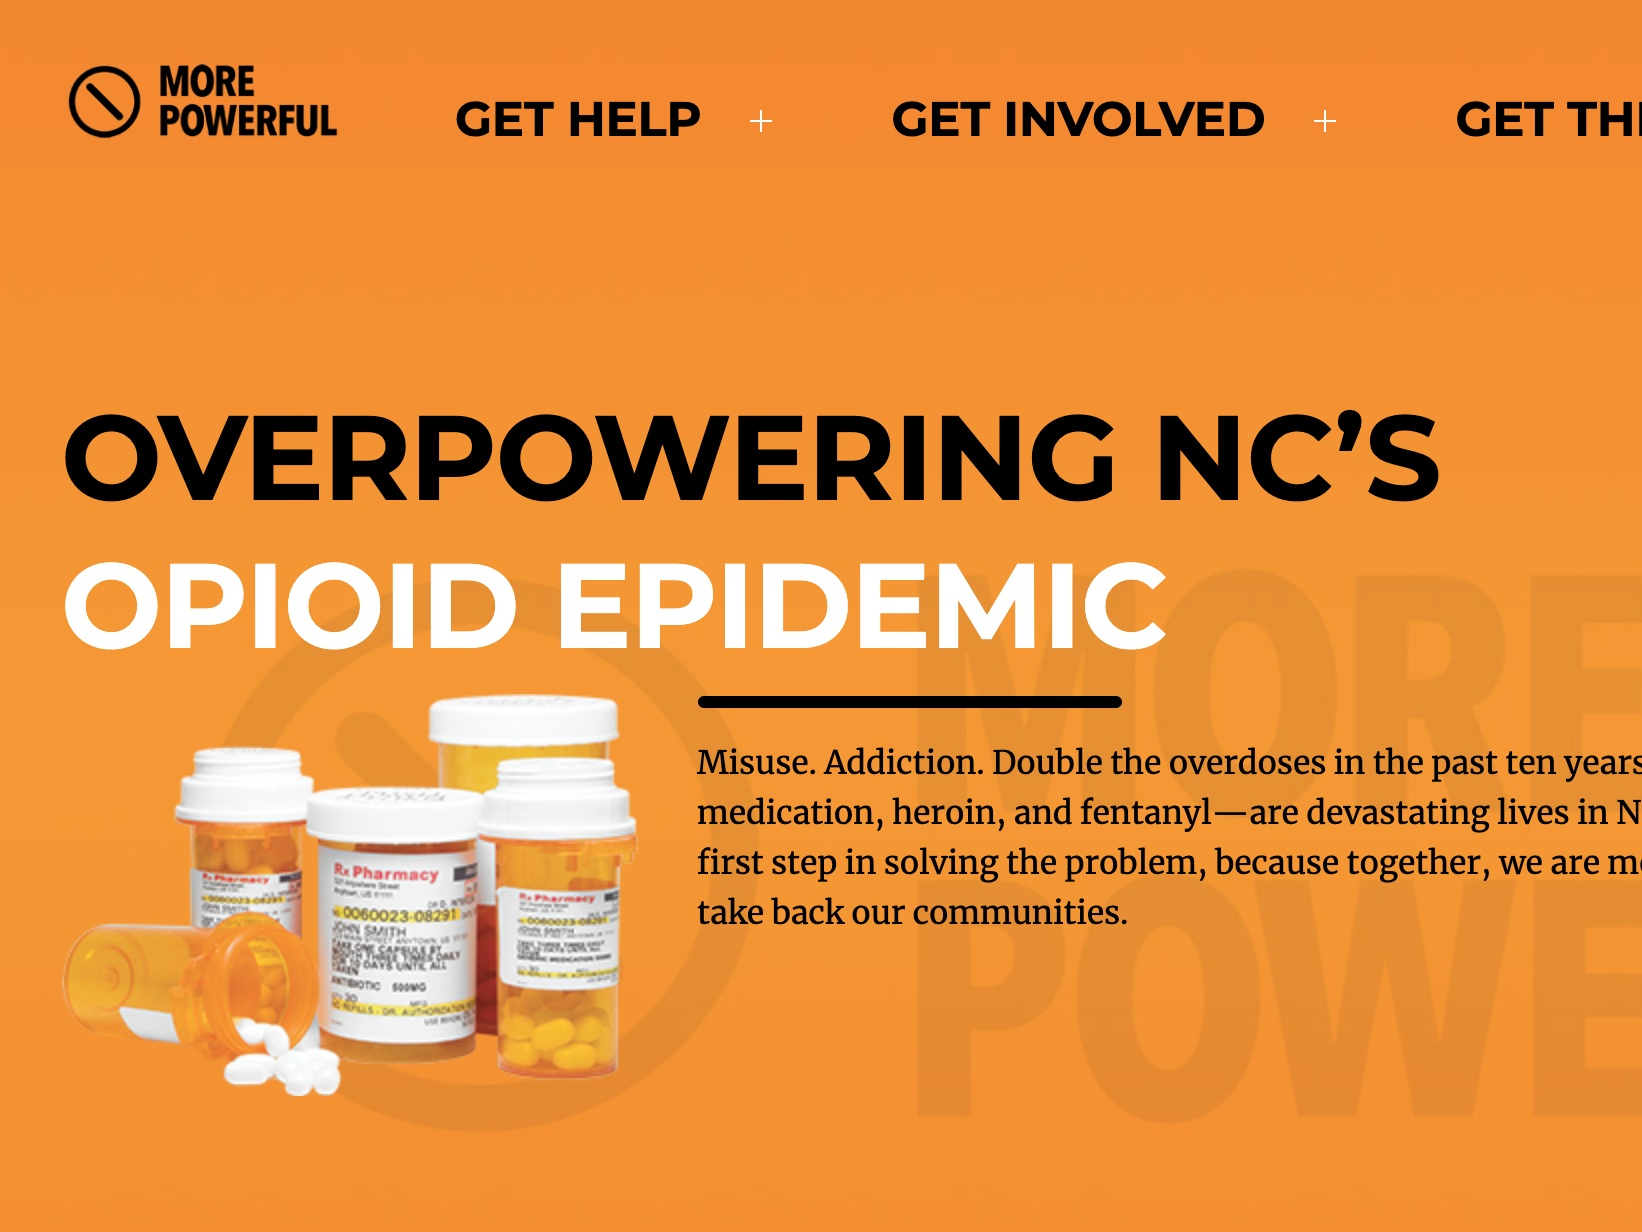 more powerful - More Powerful was created by the North Carolina Department of Justice and the Department of Health and Human Services to raise awareness of the scope and danger of the opioid crisis. The site provides comprehensive treatment, support, naloxone, and harm reduction resources.